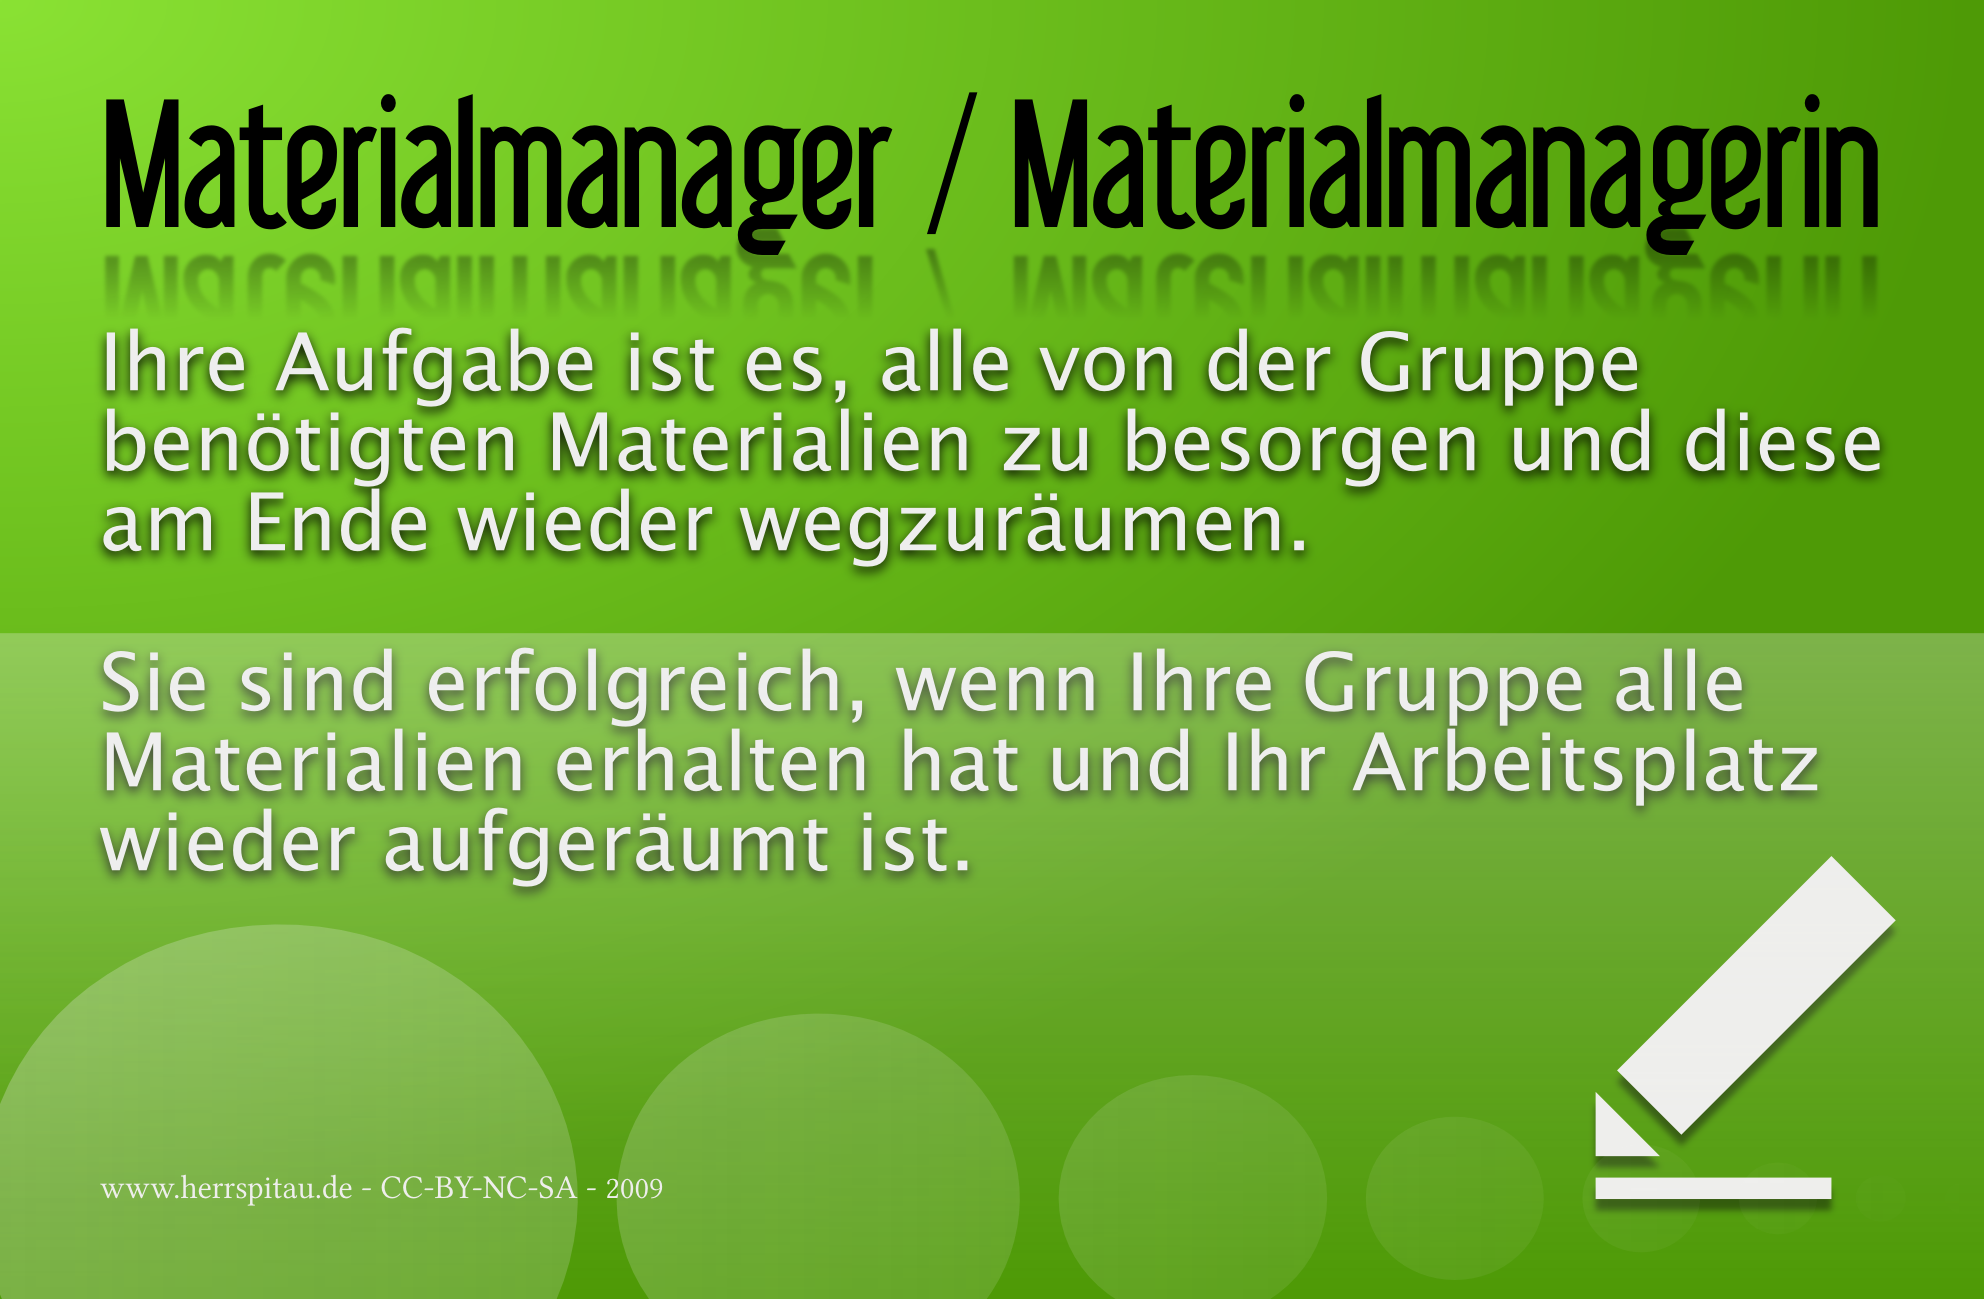 materialmanager.png